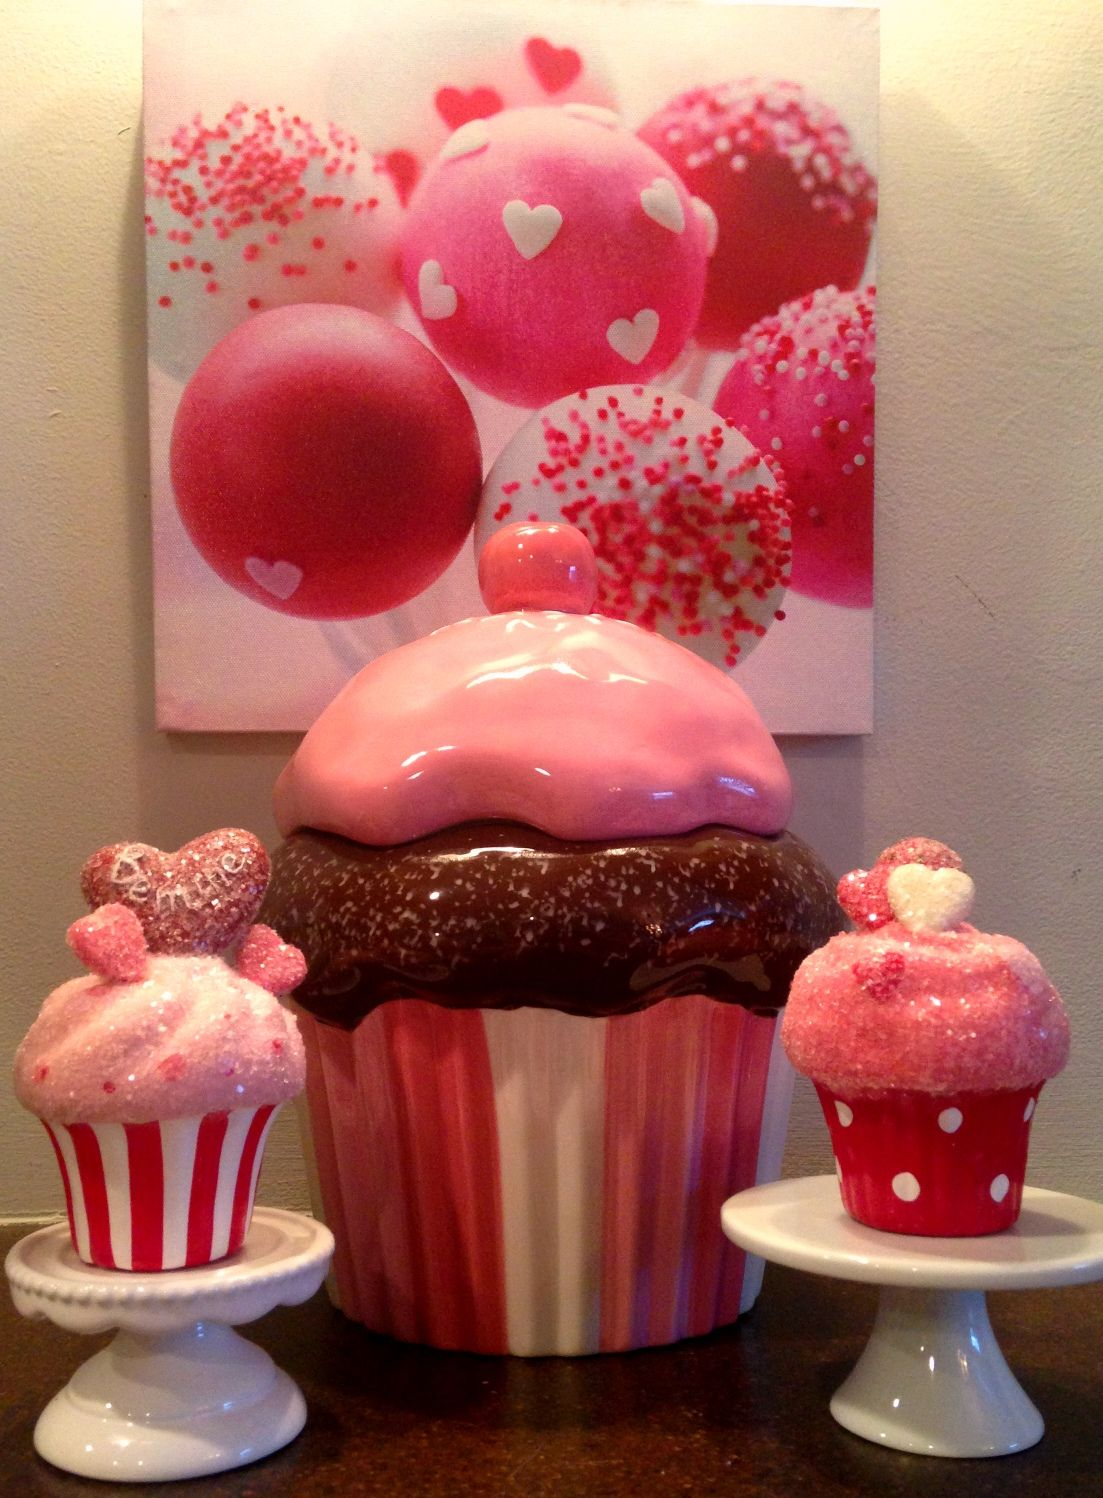 17 Best Images About Valentines Day On Pinterest Candy Canes Cupcake Decor For Kitchen